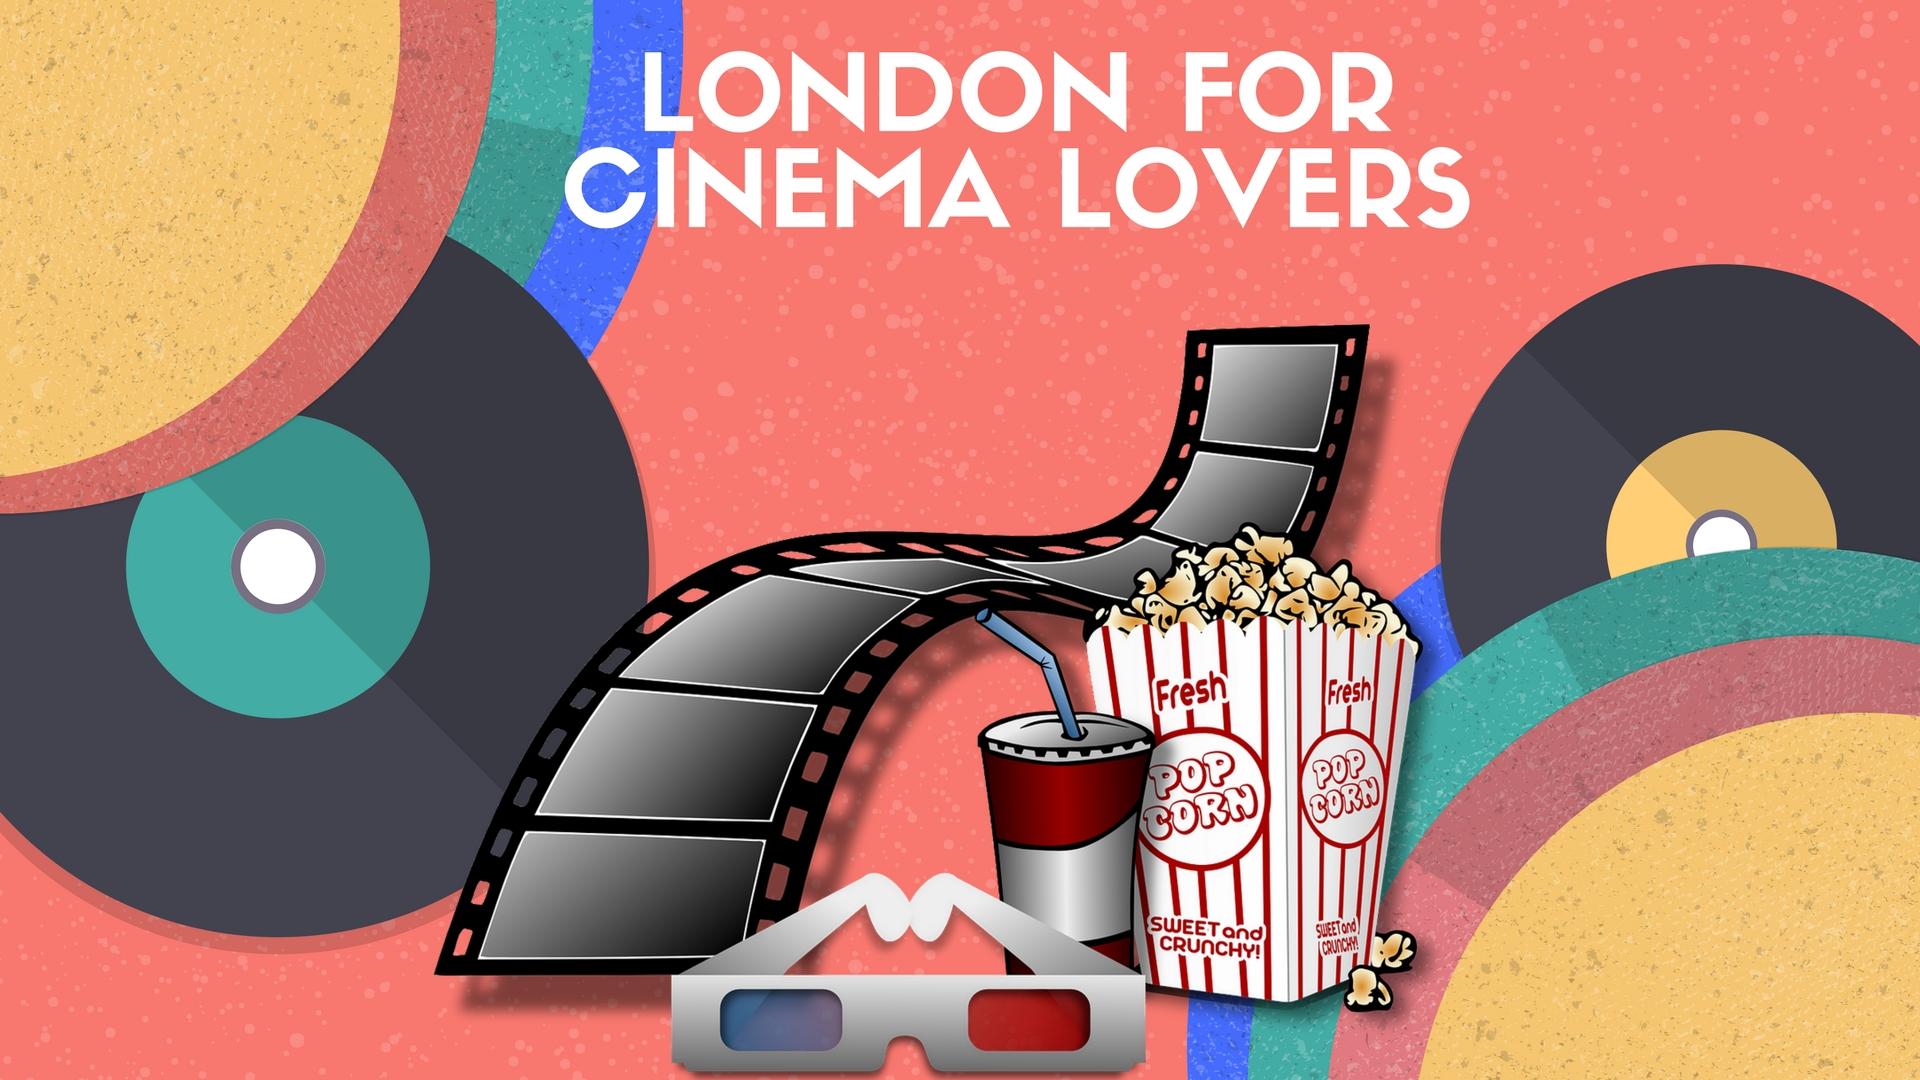 London for Cinema Lovers